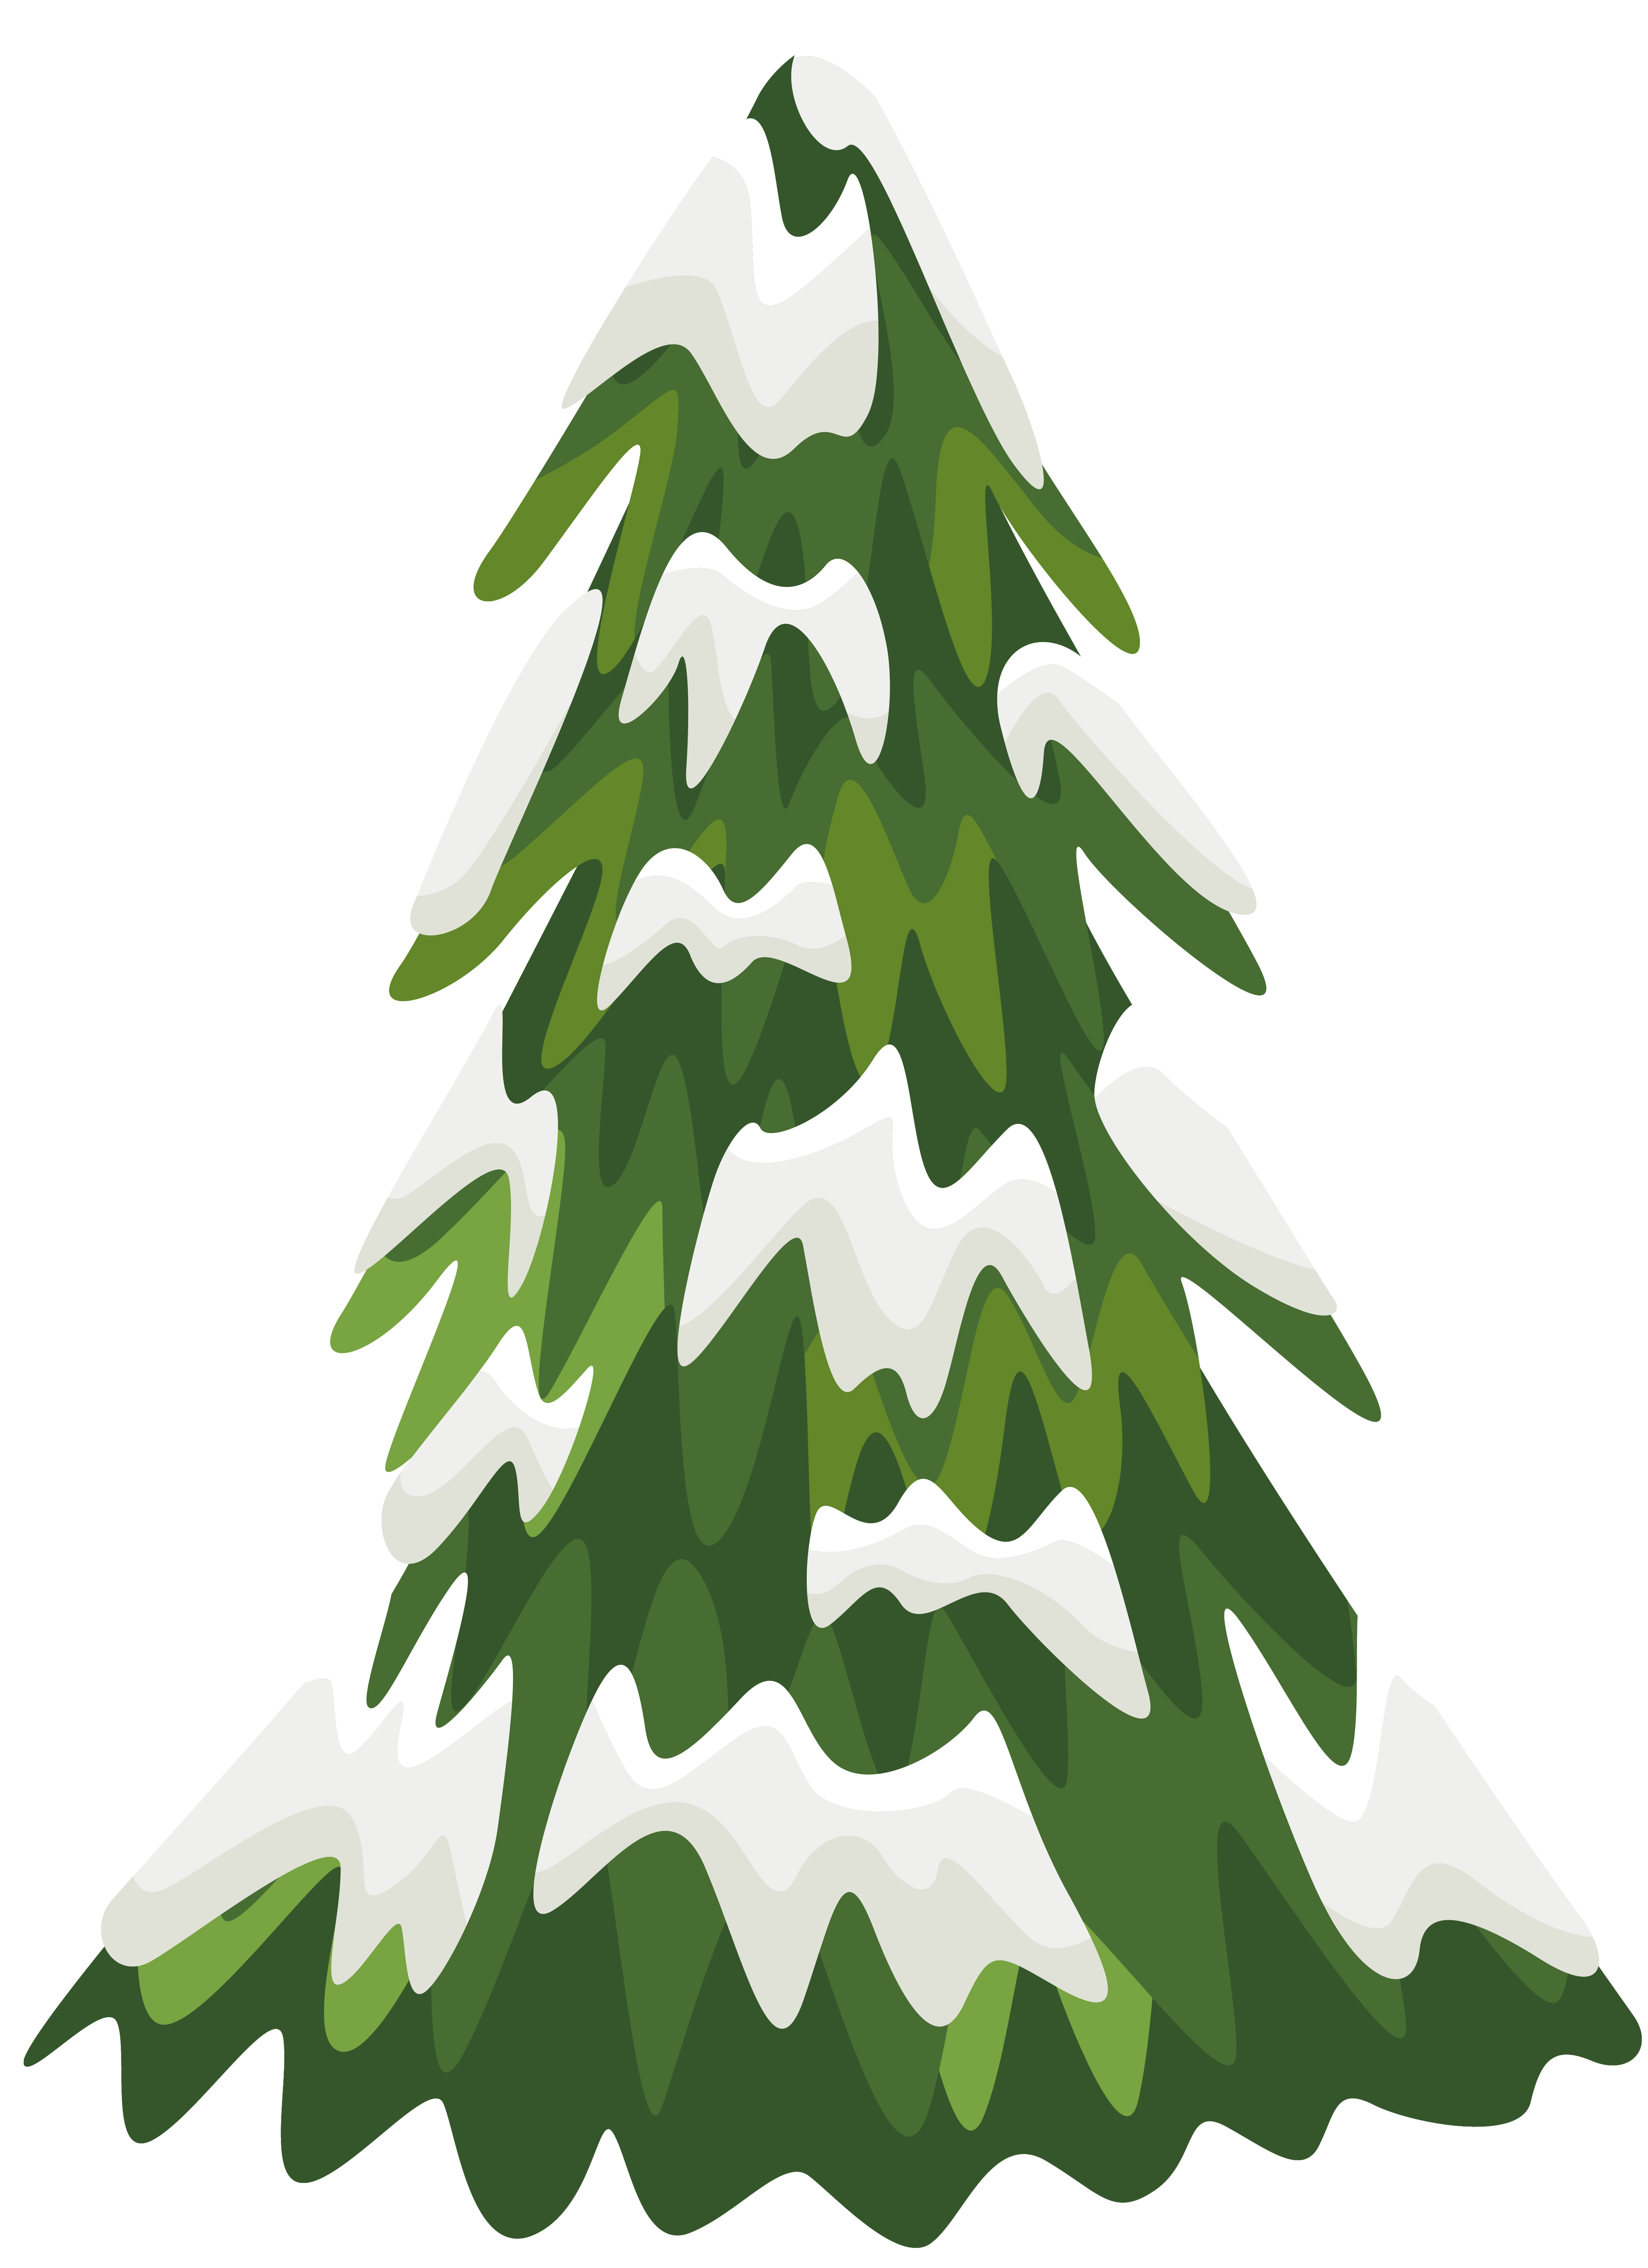 Tree clipart face. Snowy pine png image